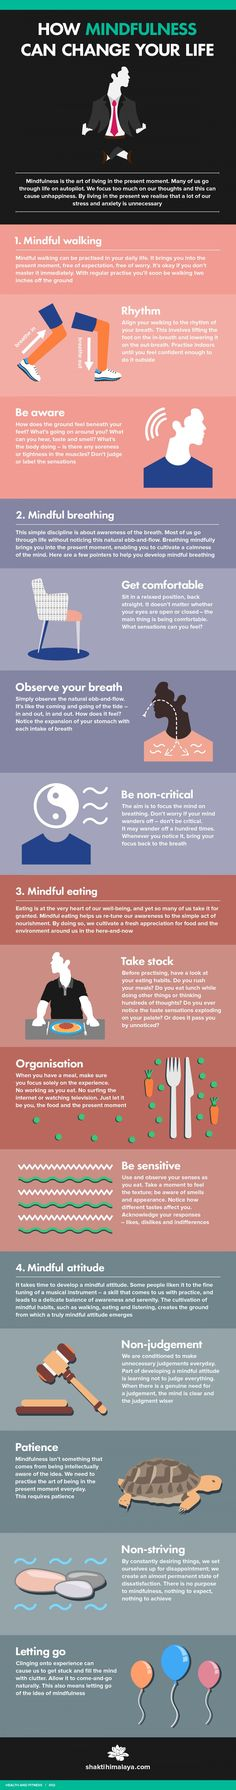 Applying Mindfulness To Everyday Life #peacefulprof